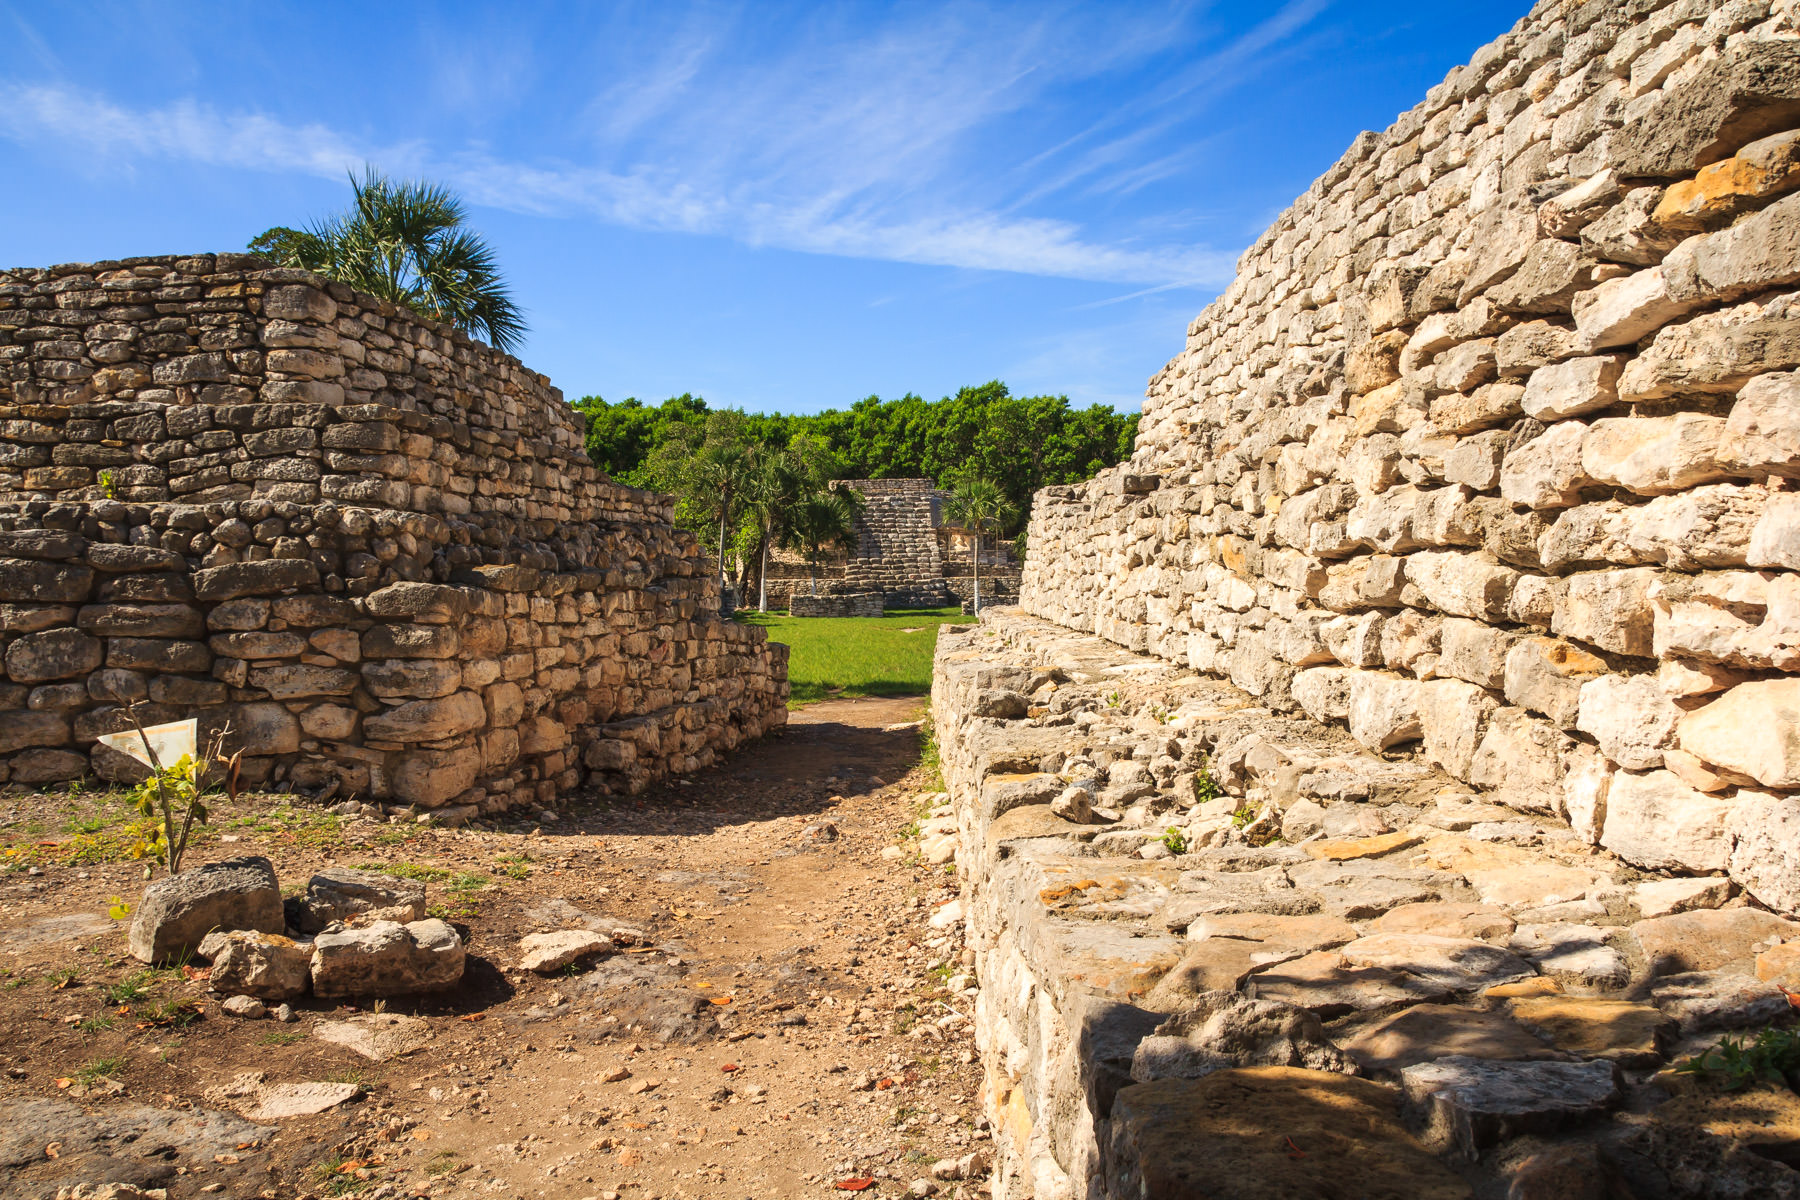 Detail of ruins at the Mayan city of Xcambo in the Mexican state of Yucatan.